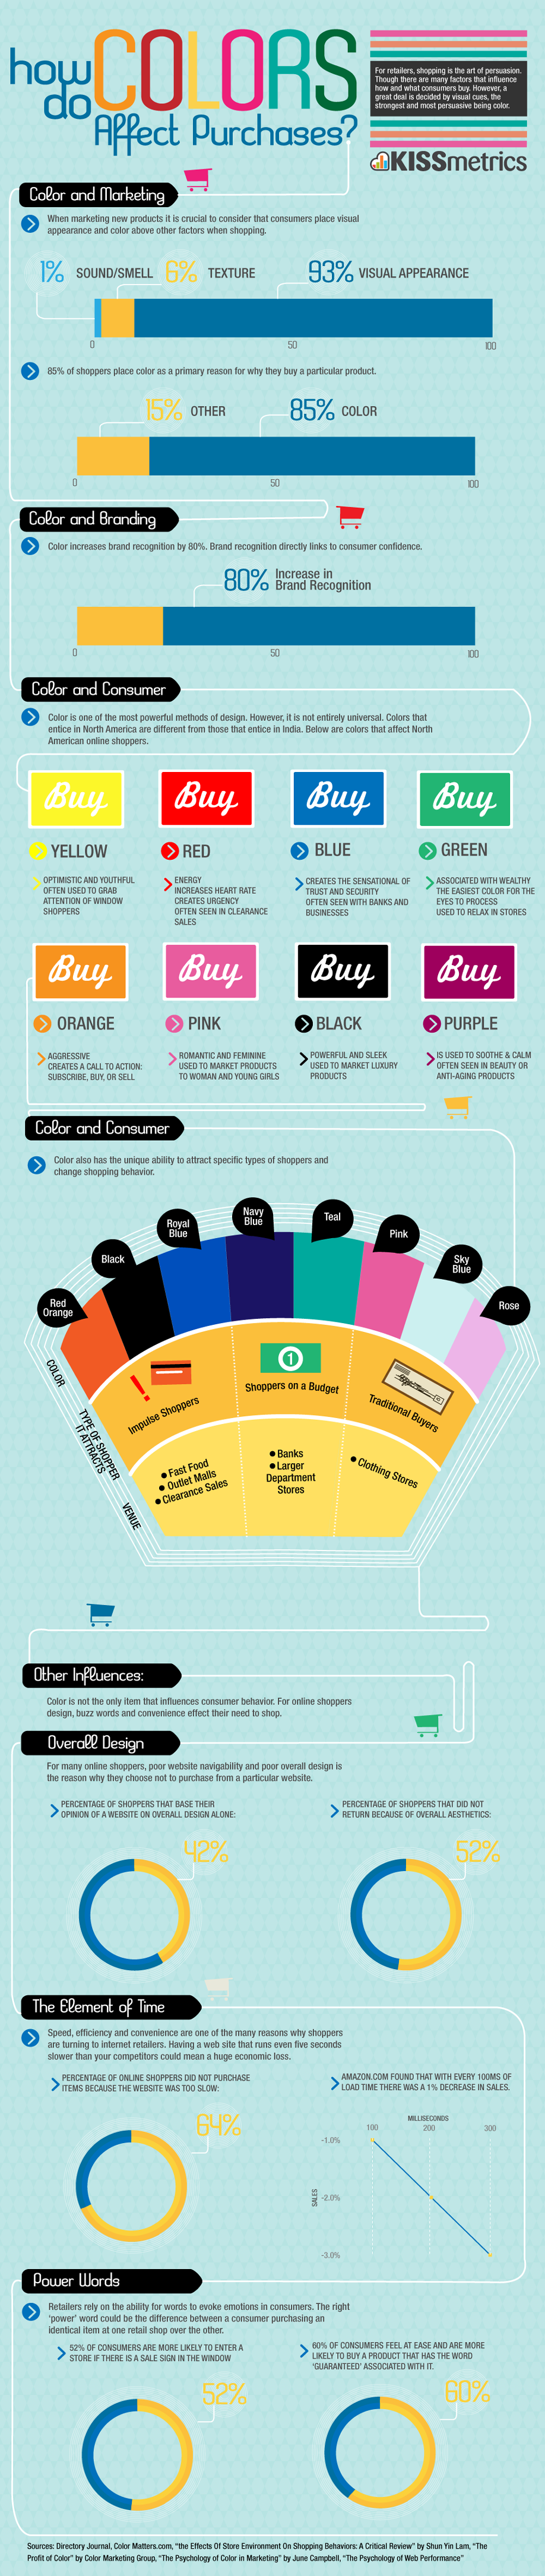 How Do Colors Affect Purchases #Infographic #GraphicDesign